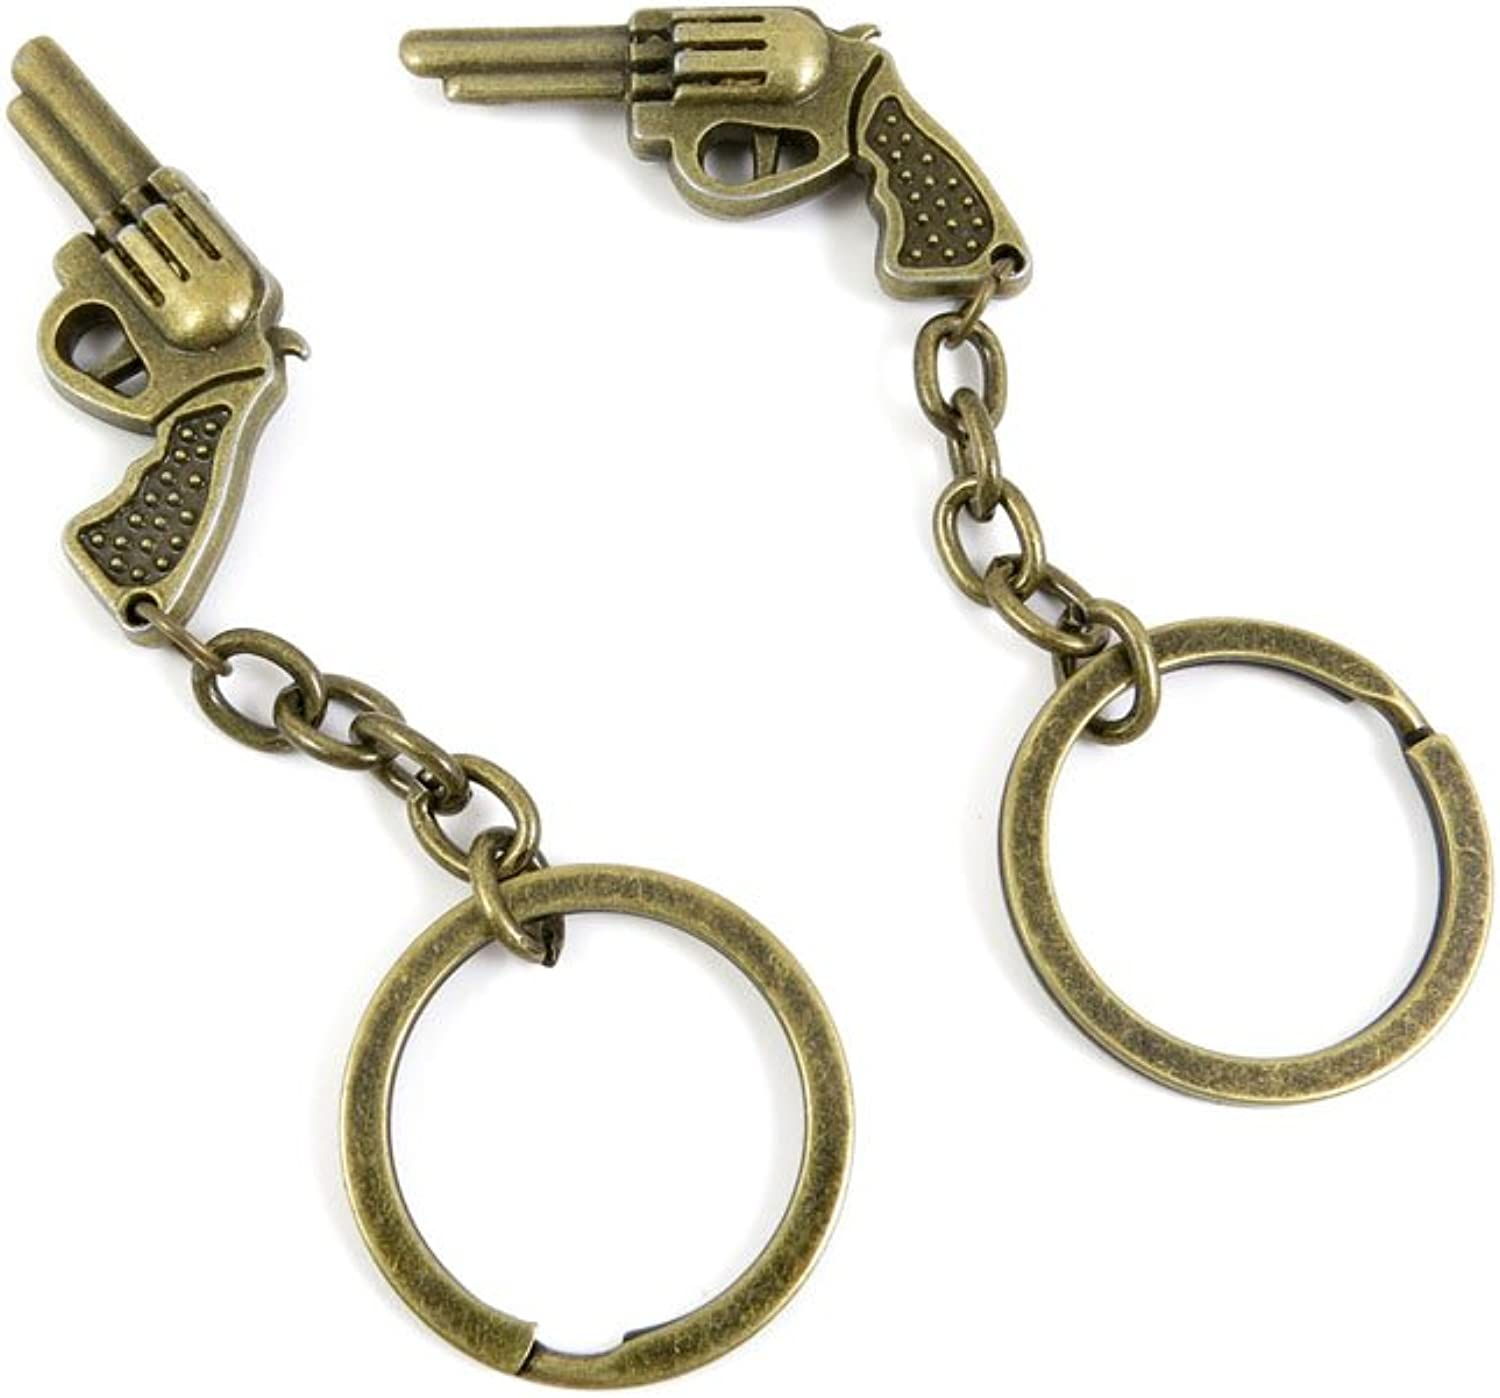 100 PCS Keyrings Keychains Key Ring Chains Tags Jewelry Findings Clasps Buckles Supplies Y2FB6 Revolver Gun